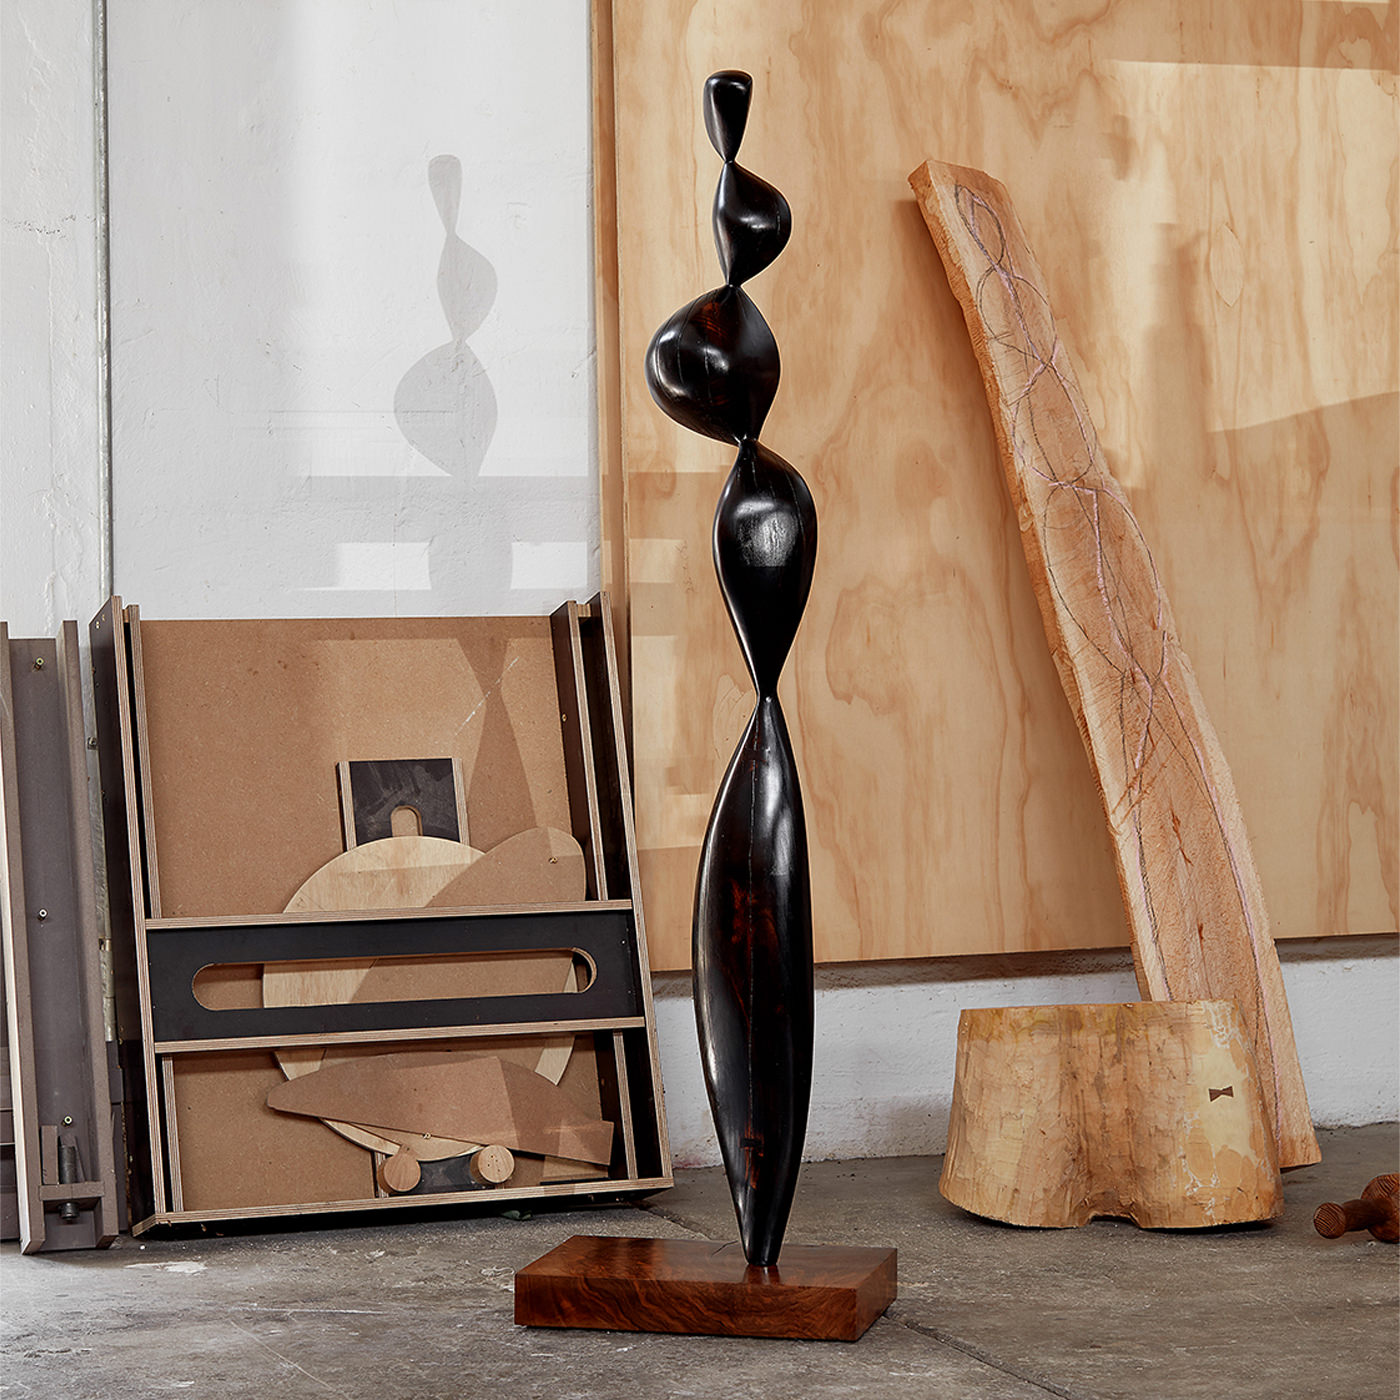 Nicholas Shurey Art Design Sculpture